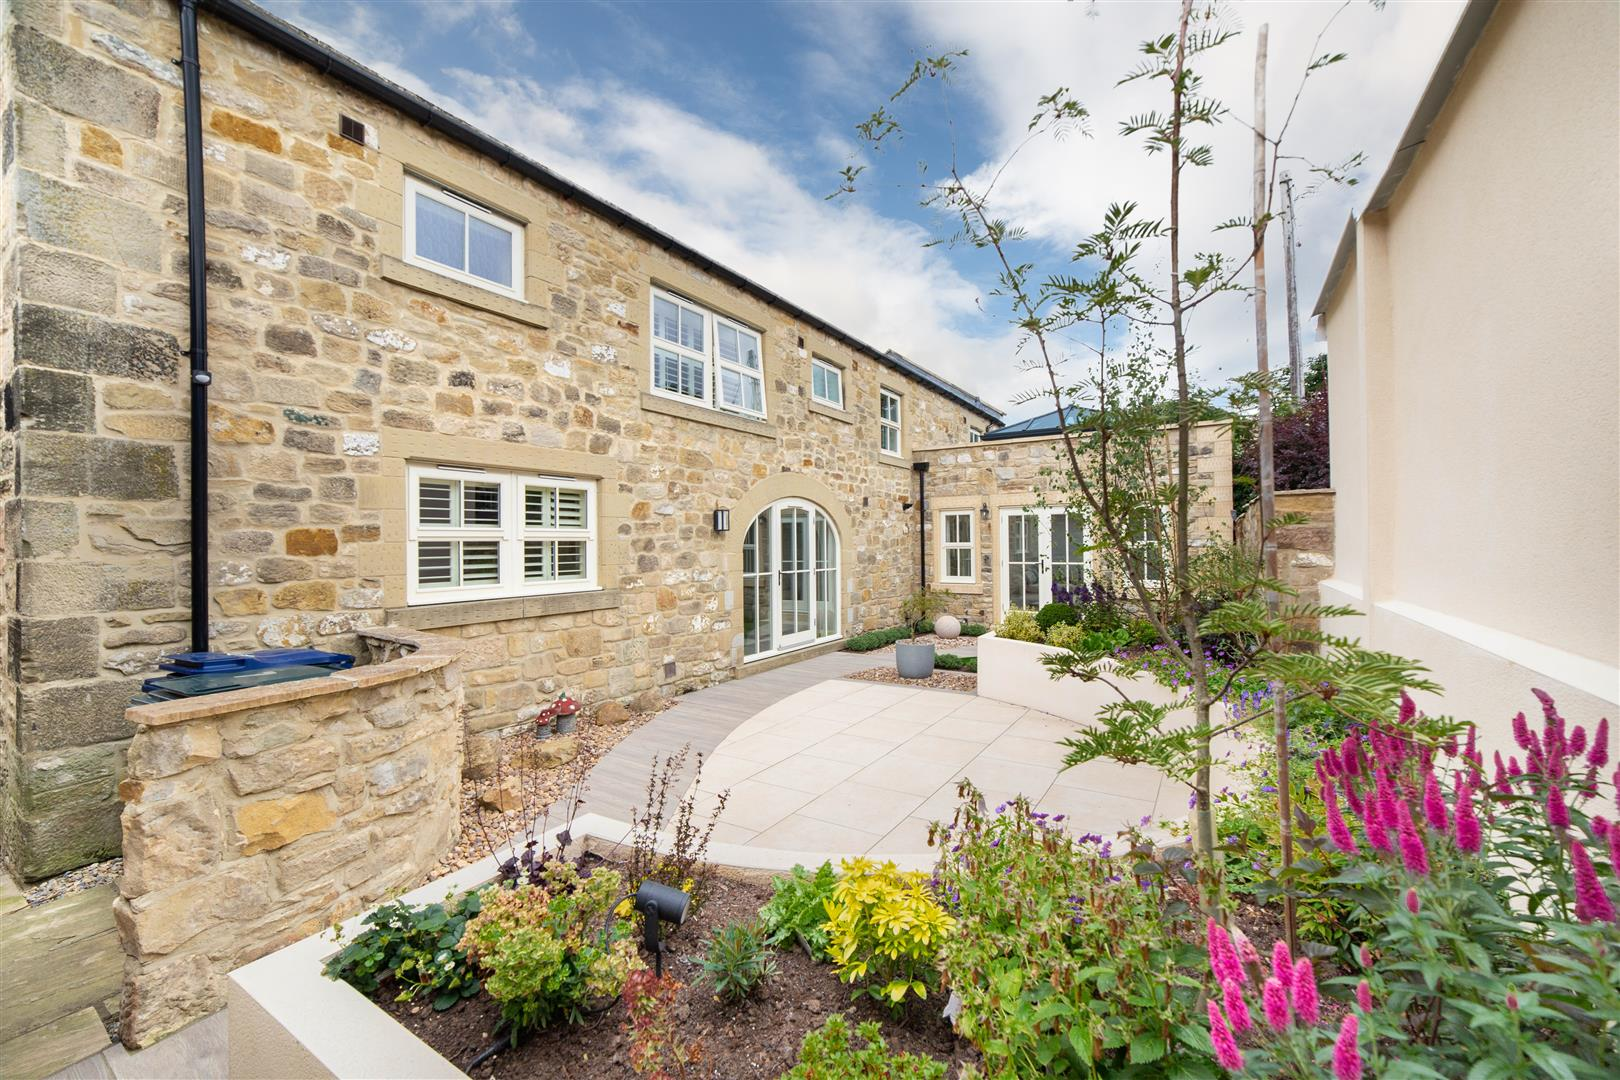 3 bed barn conversion for sale in Newcastle Upon Tyne, NE13 7BR, NE13